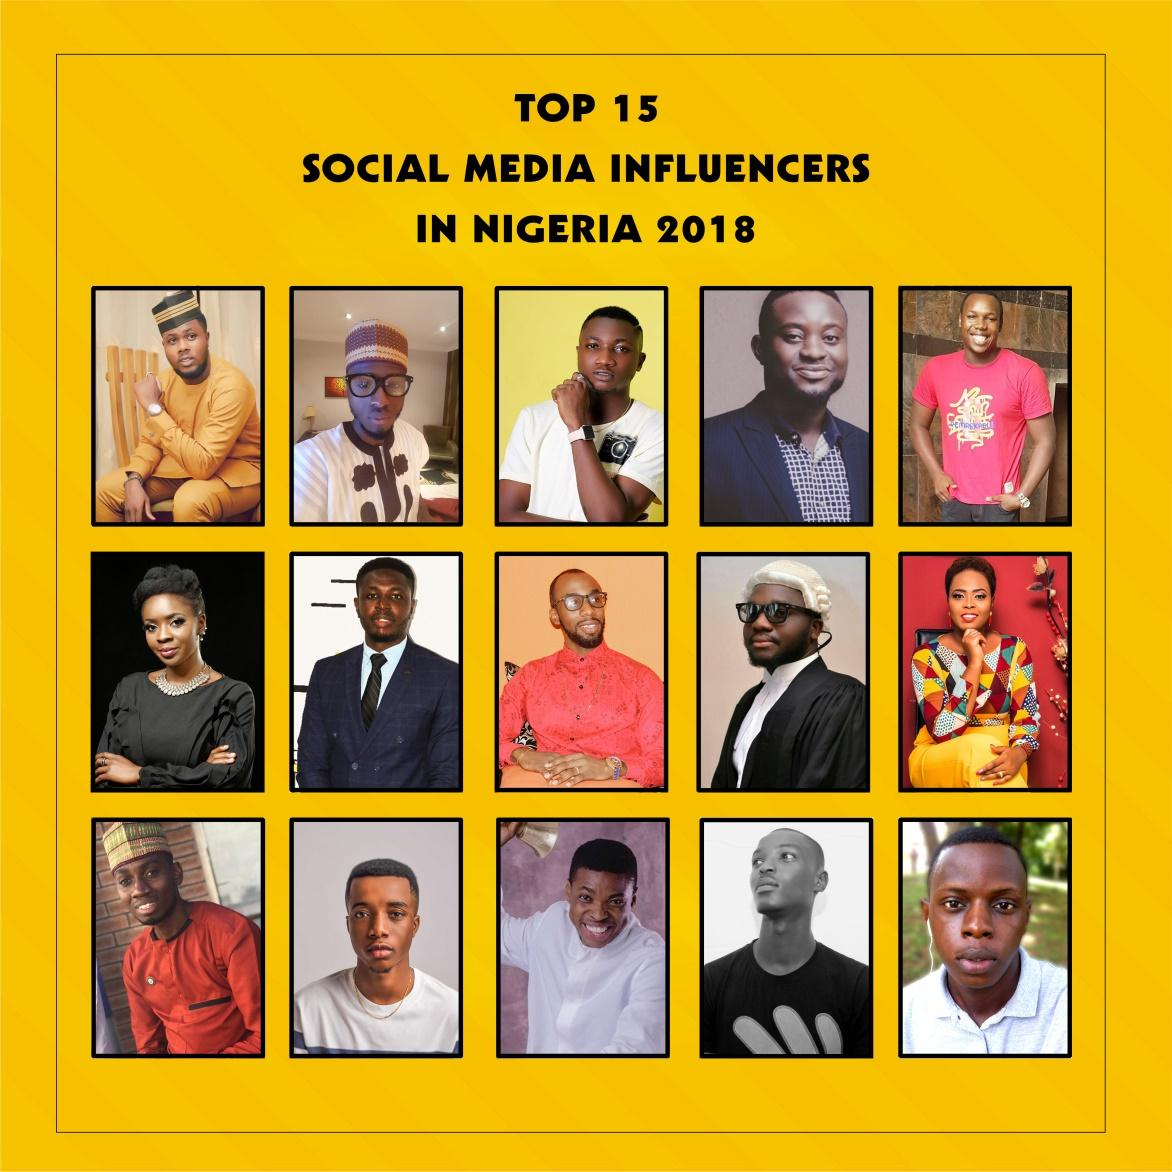 Top 15 Brand Influencers in Nigeria